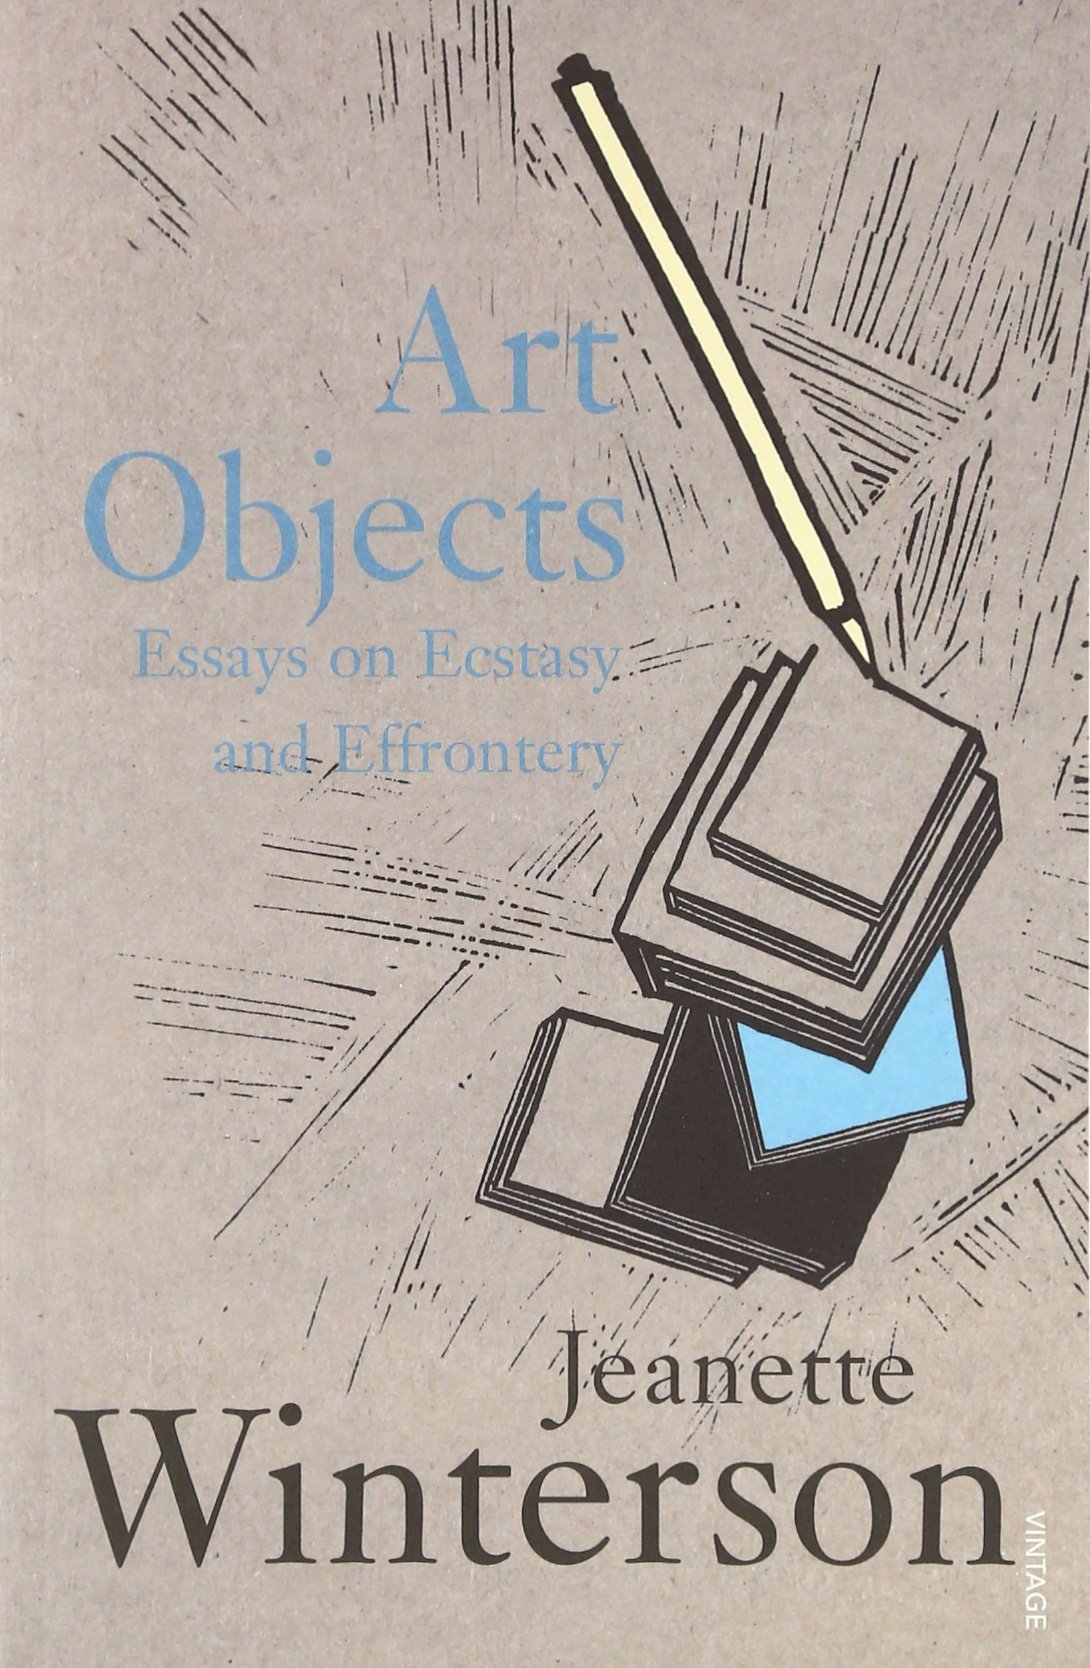 art objects essays on ecstasy and effrontery amazon co uk art objects essays on ecstasy and effrontery amazon co uk jeanette winterson 9780099590019 books